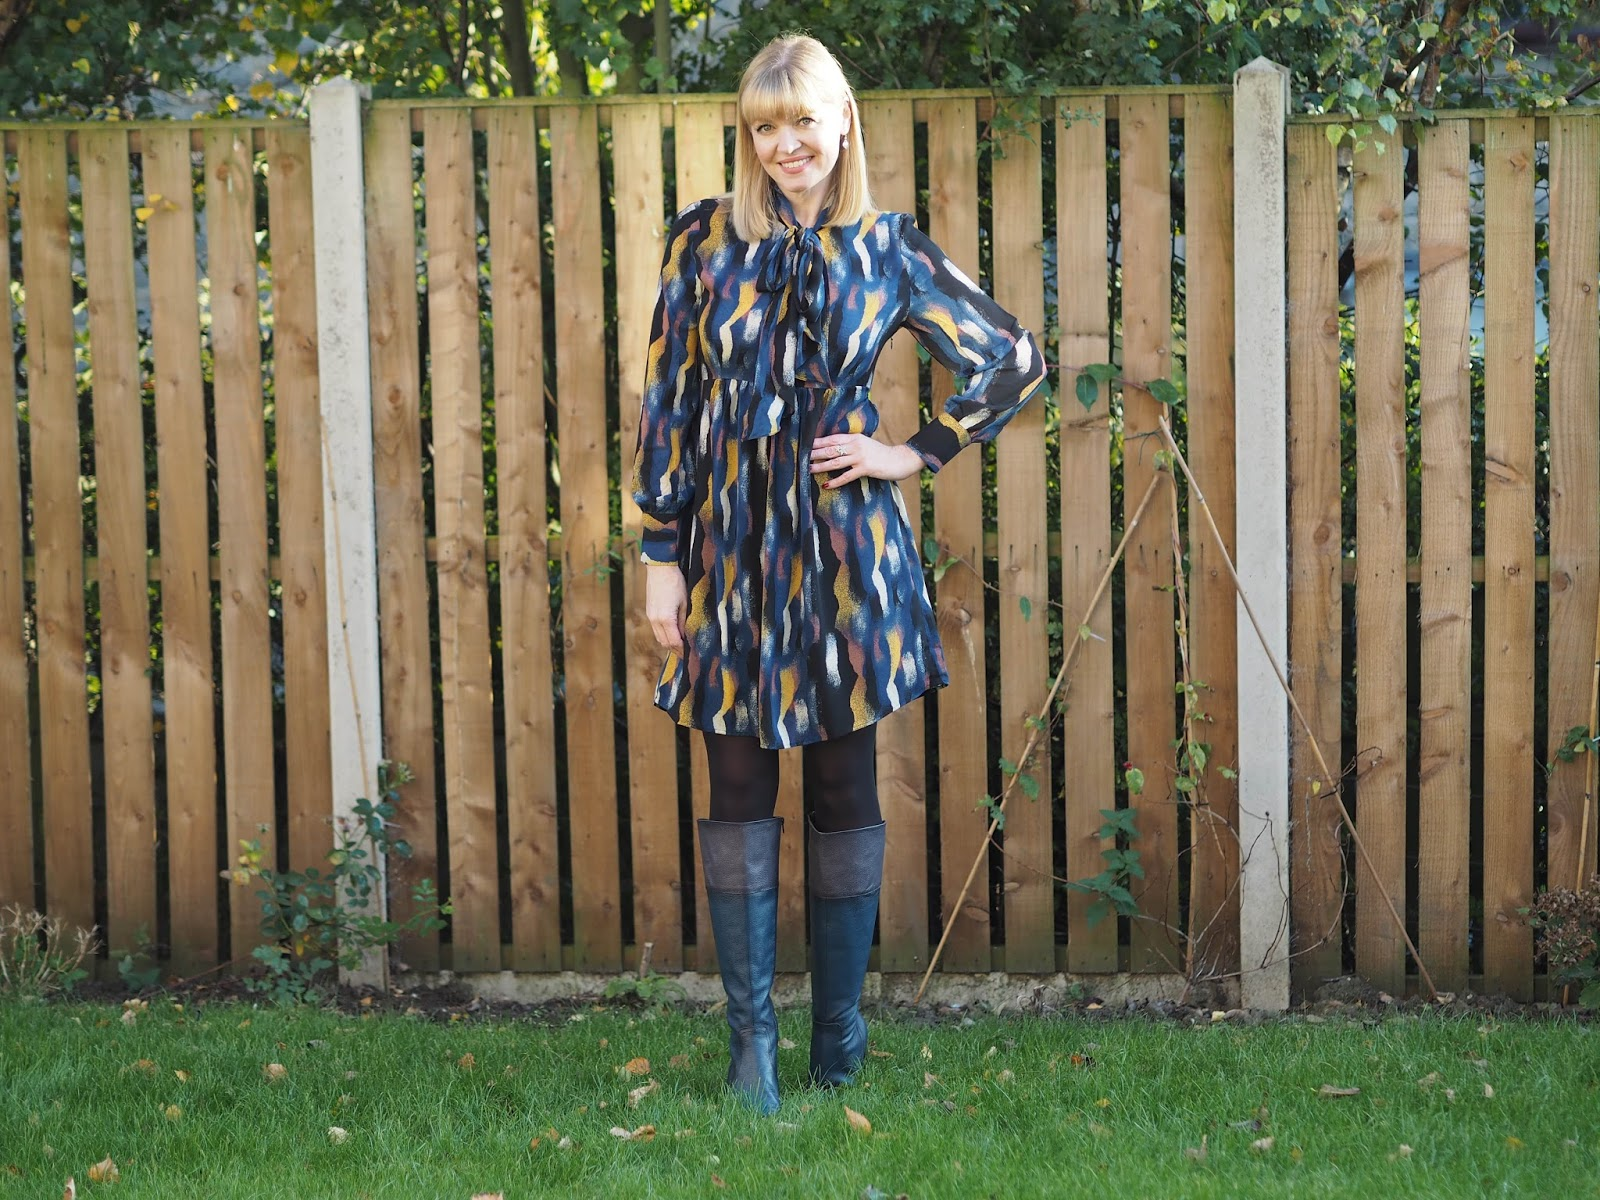 Tie neck print smock dress with pussy bow, and navy knee high boots with black cuff, over 40